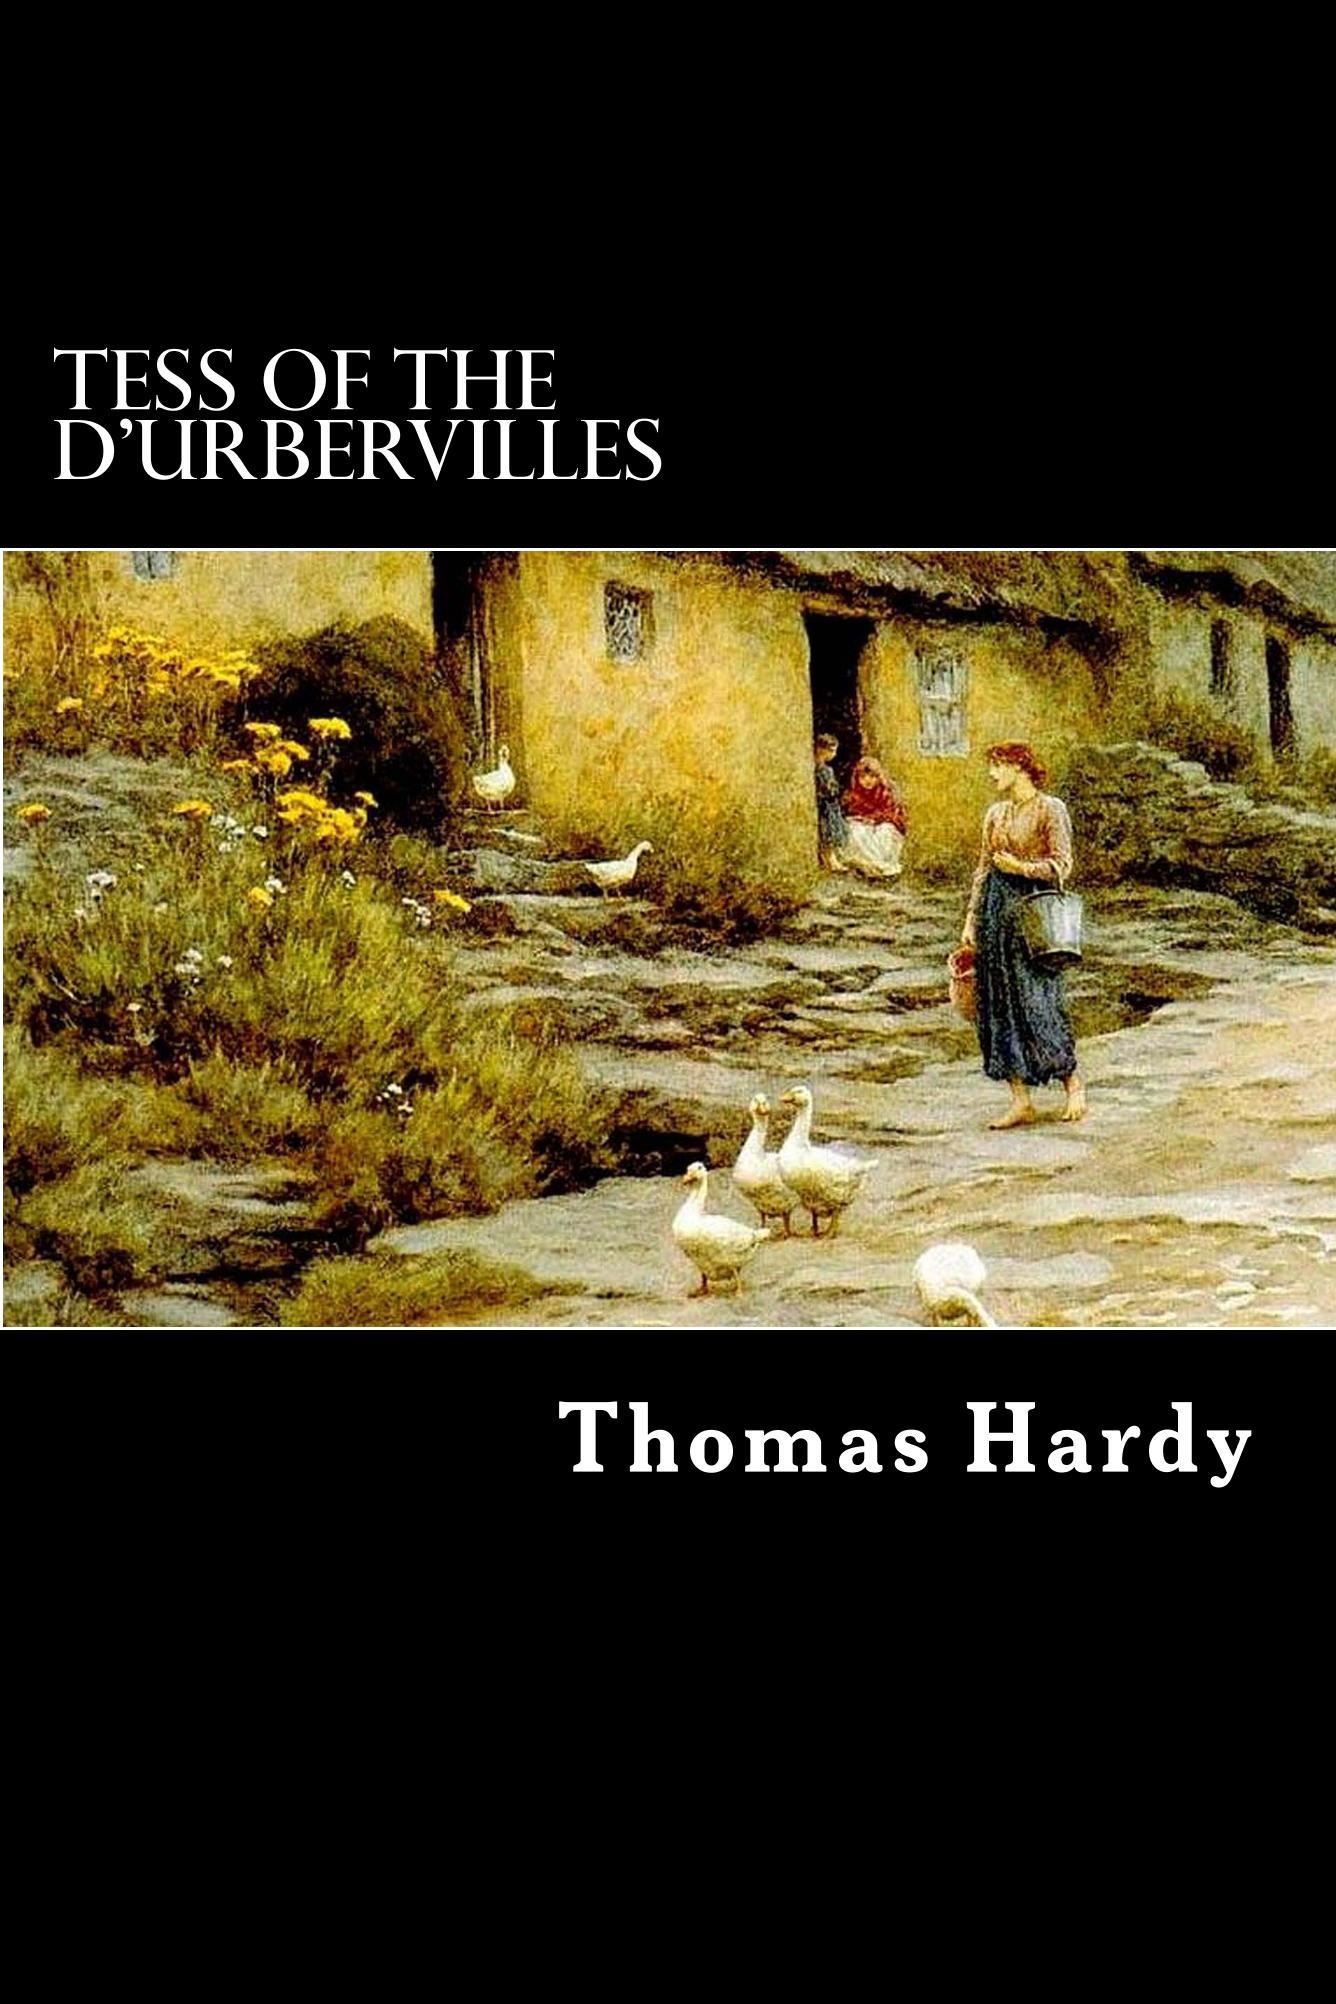 Tess of the d'Urbervilles By: Thomas Hardy